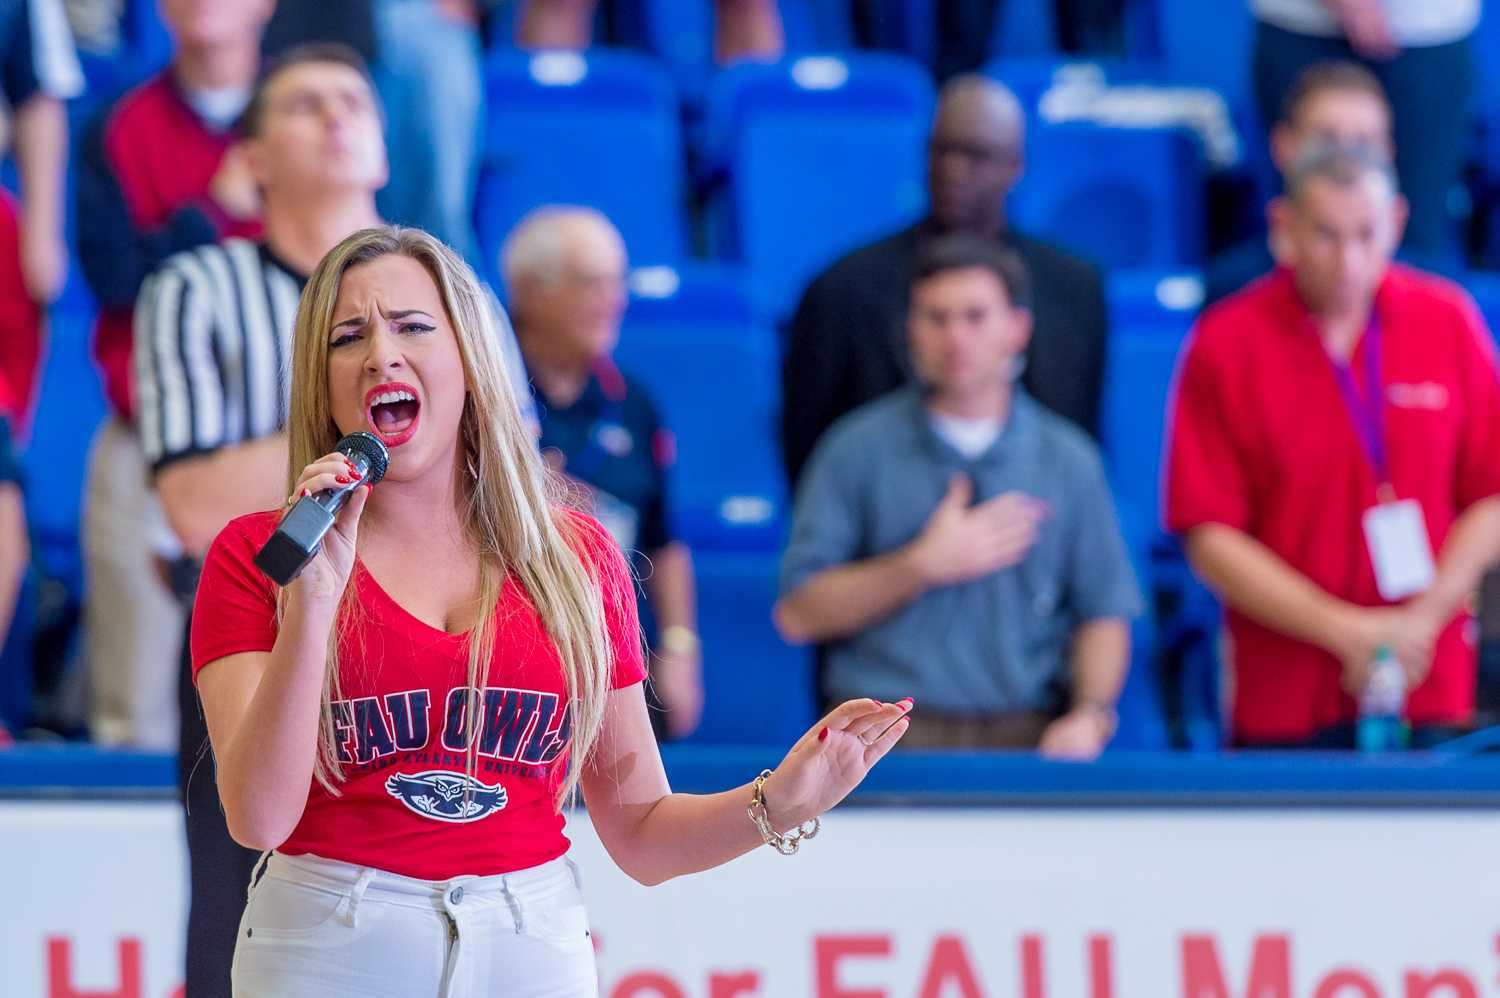 FAU student Jennifer Ashley sings the national anthem prior to the tip-off of the FAU Men's Basketball game against UTEP on Thursday night Feb 5.